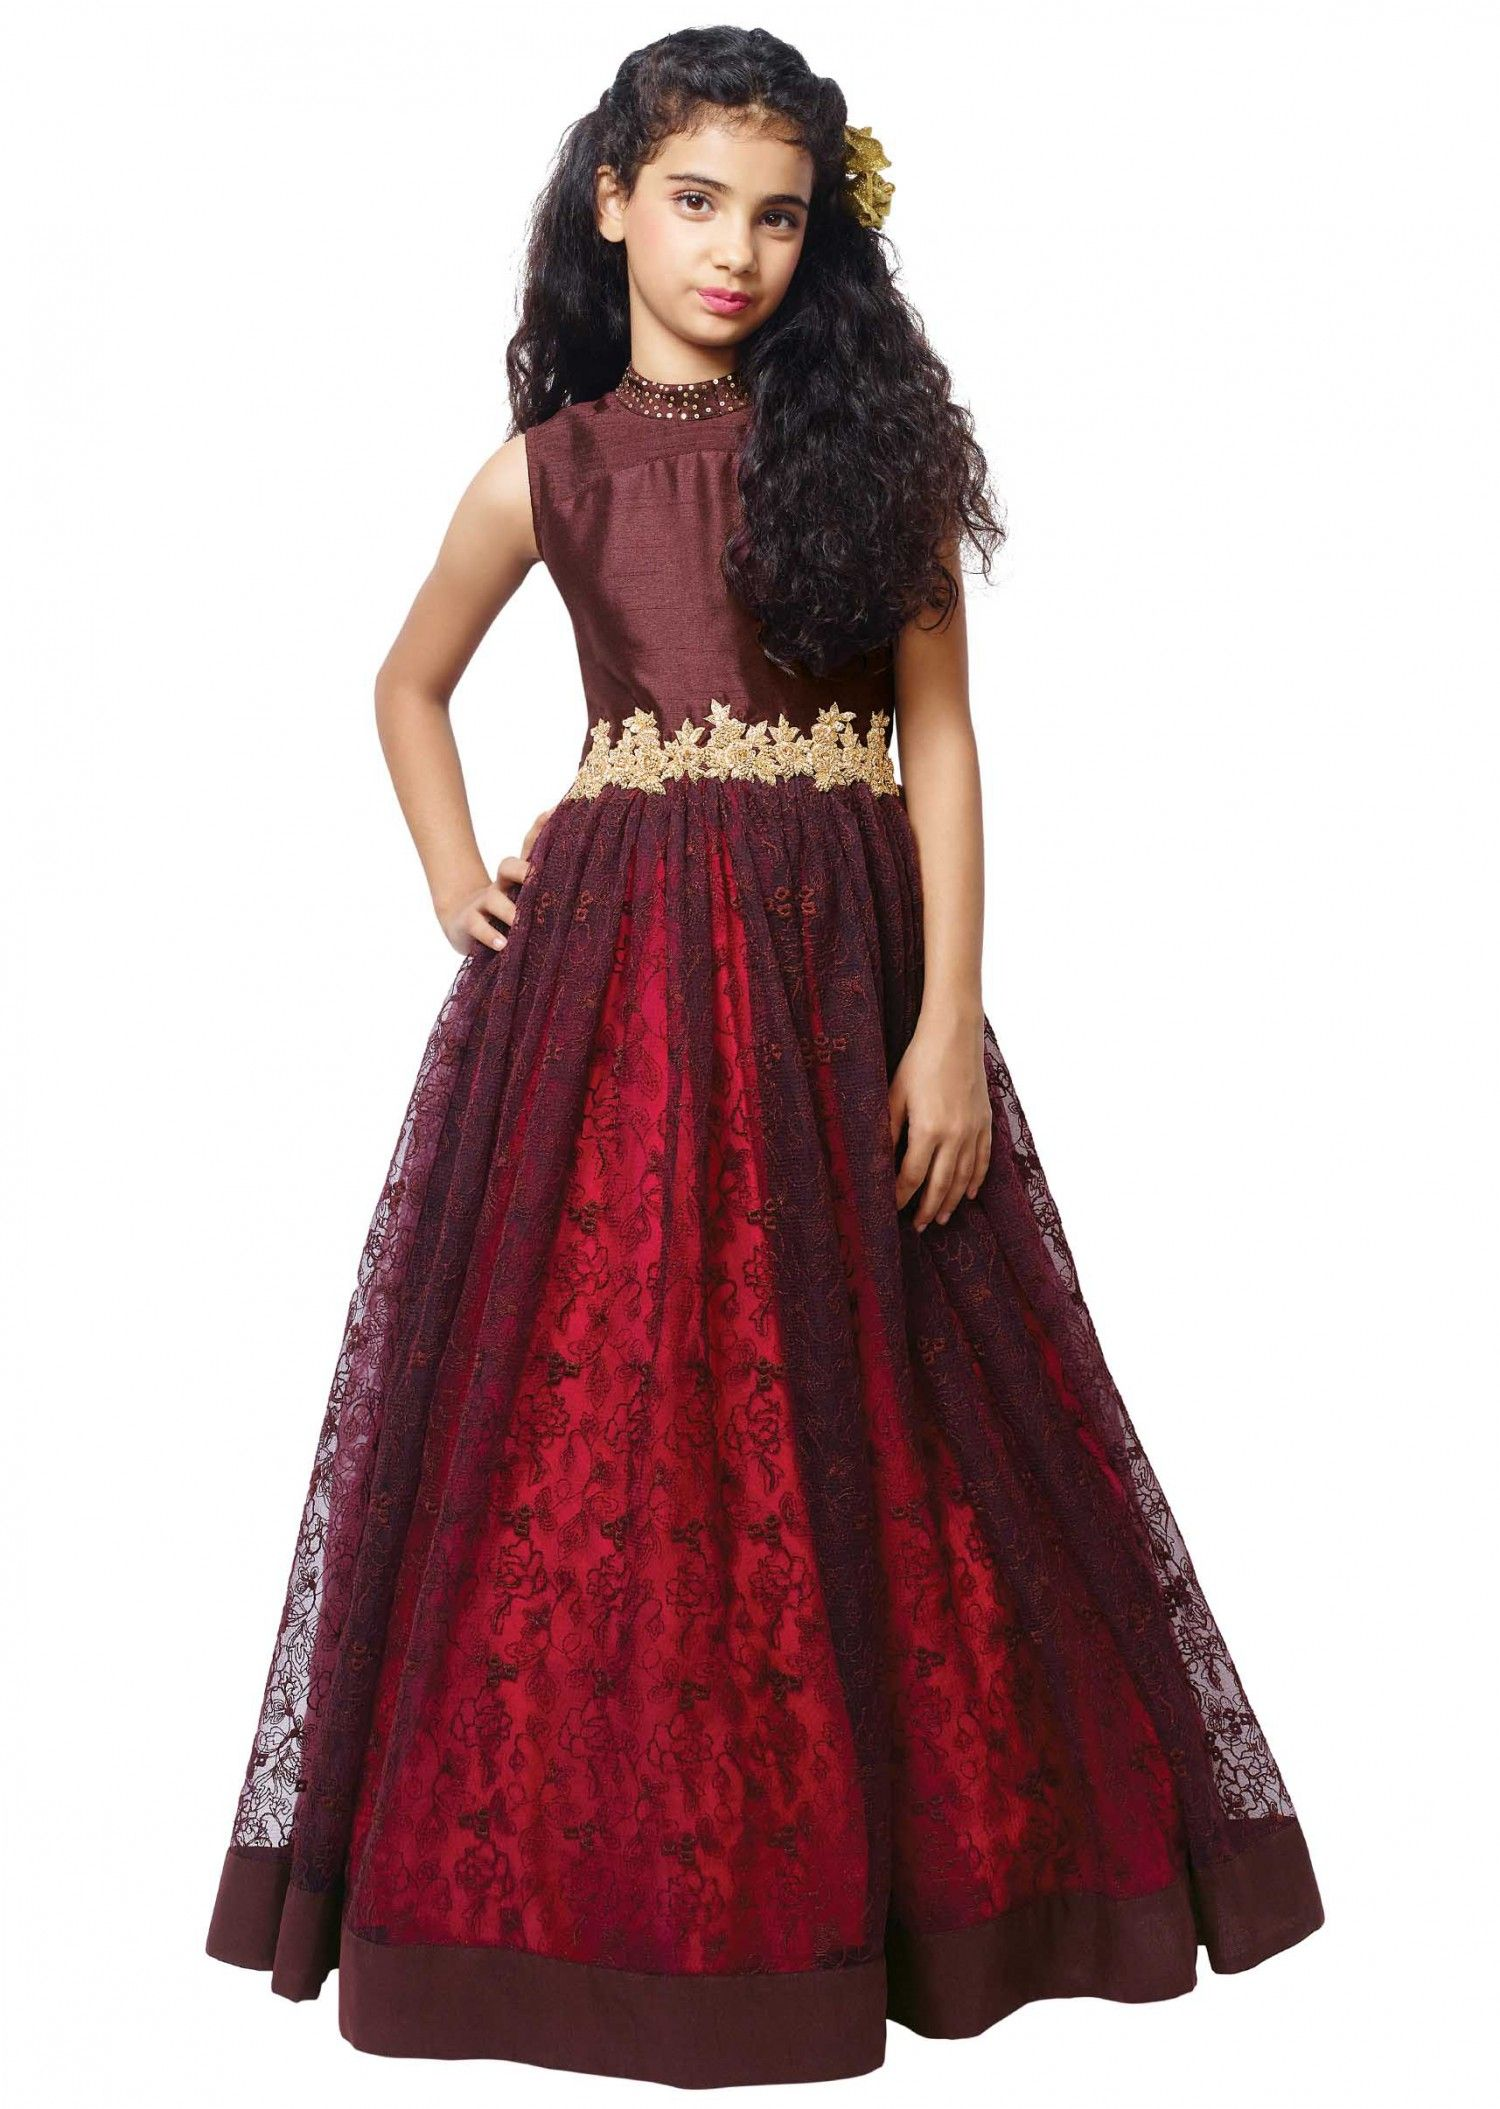 456dbff10961e Rasal Net + Hand Work Kids Wear Gown - More Details Contact No....  +919537510757.